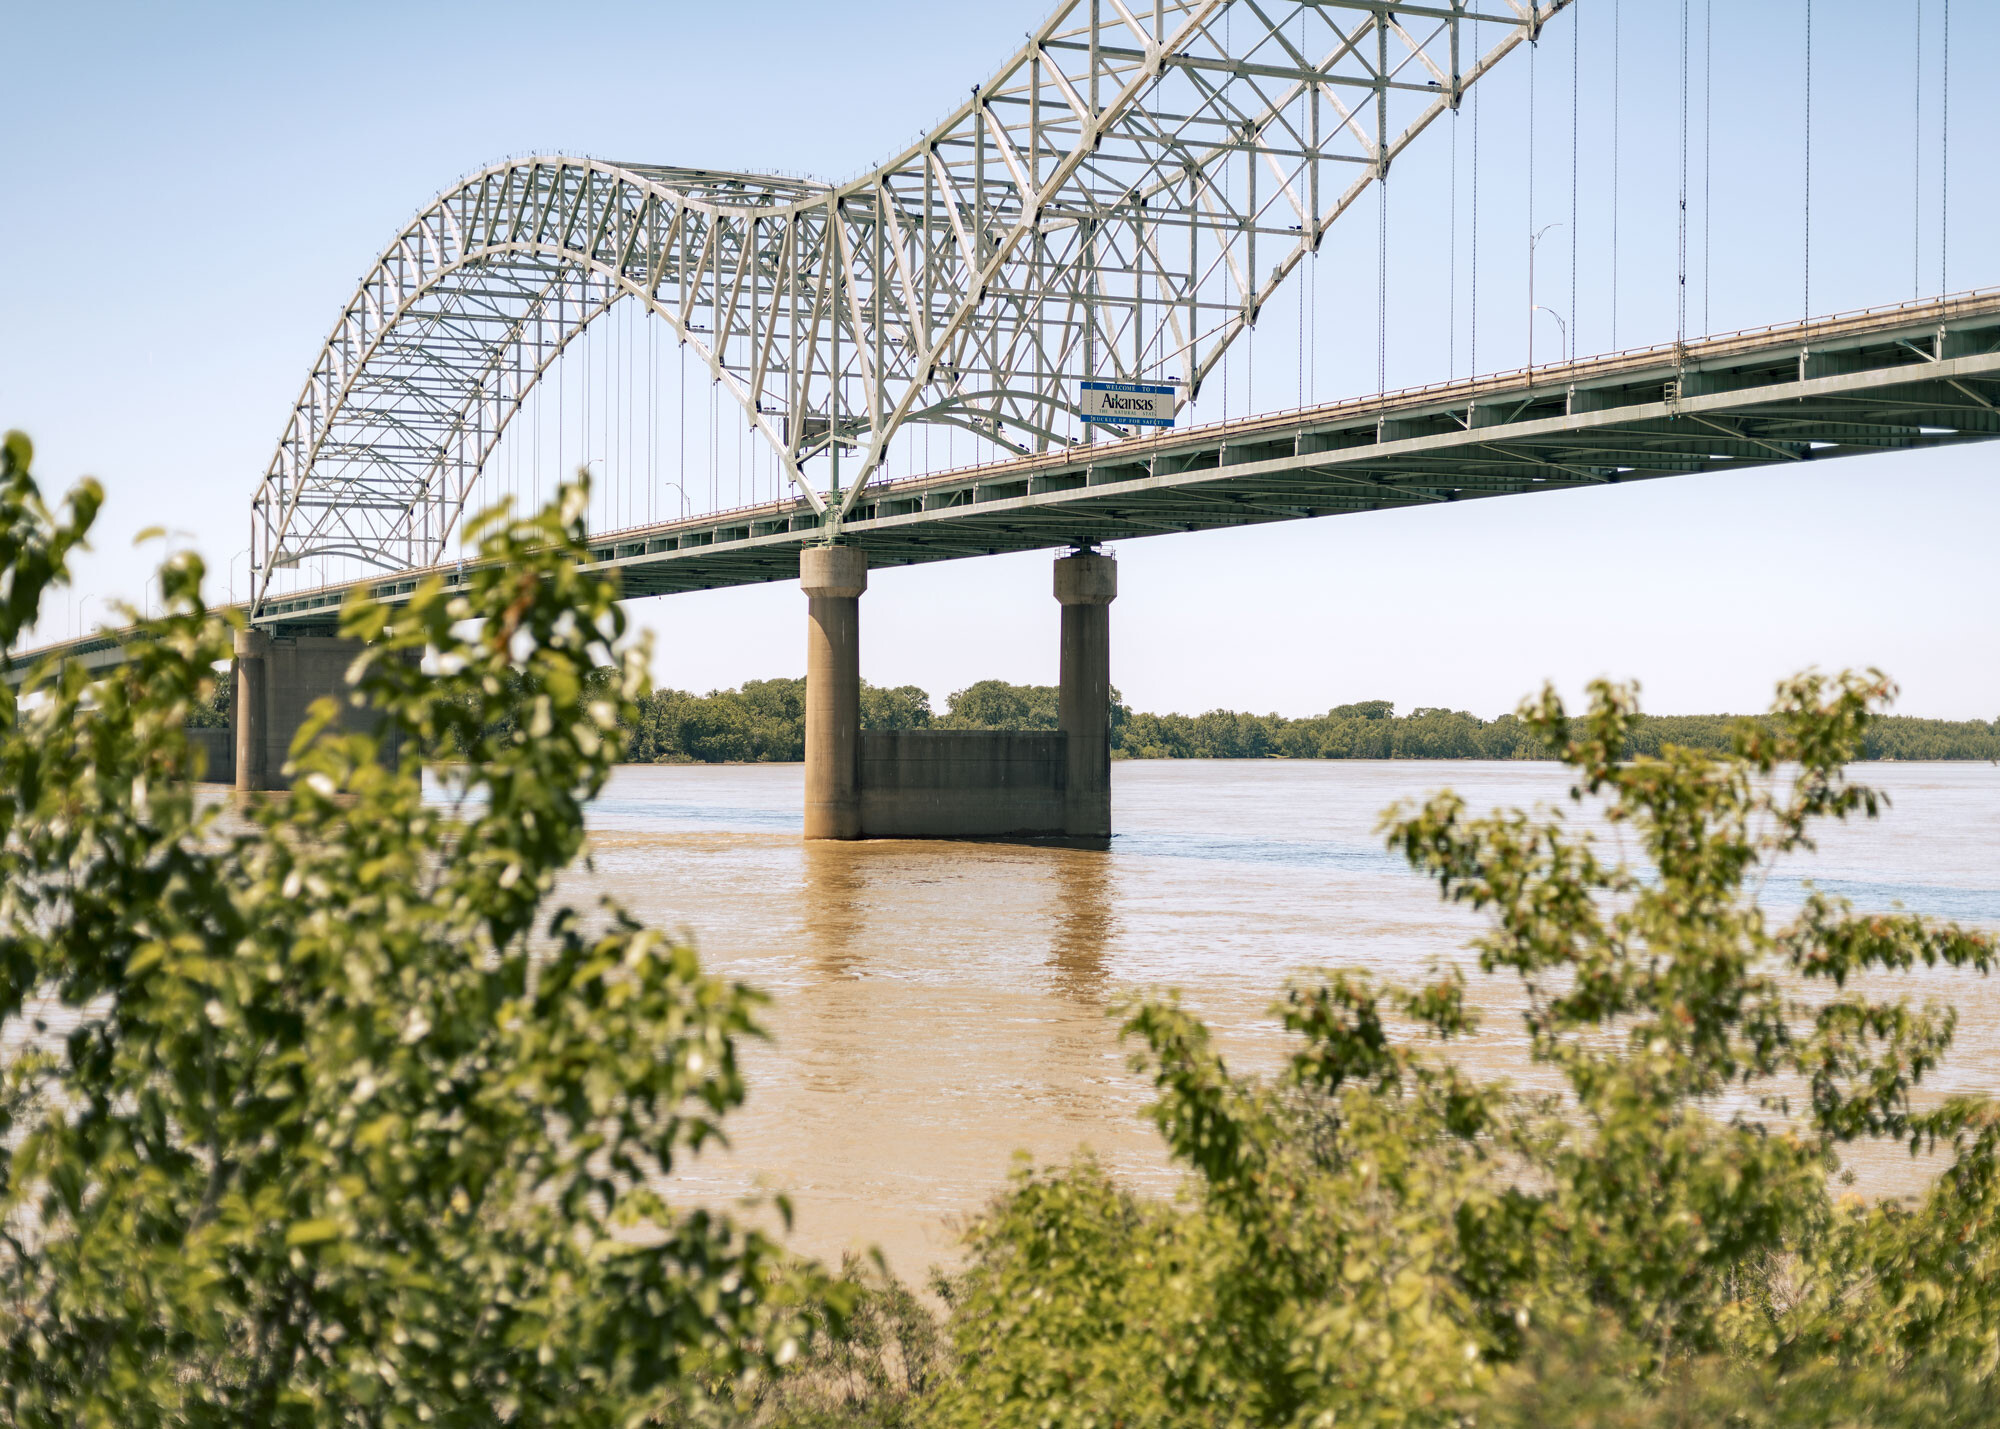 <i>Houston Cofield/Bloomberg/Getty Images</i><br/>The Hernando DeSoto Bridge over the Mississippi River on the Tennessee-Arkansas line is seen May 14